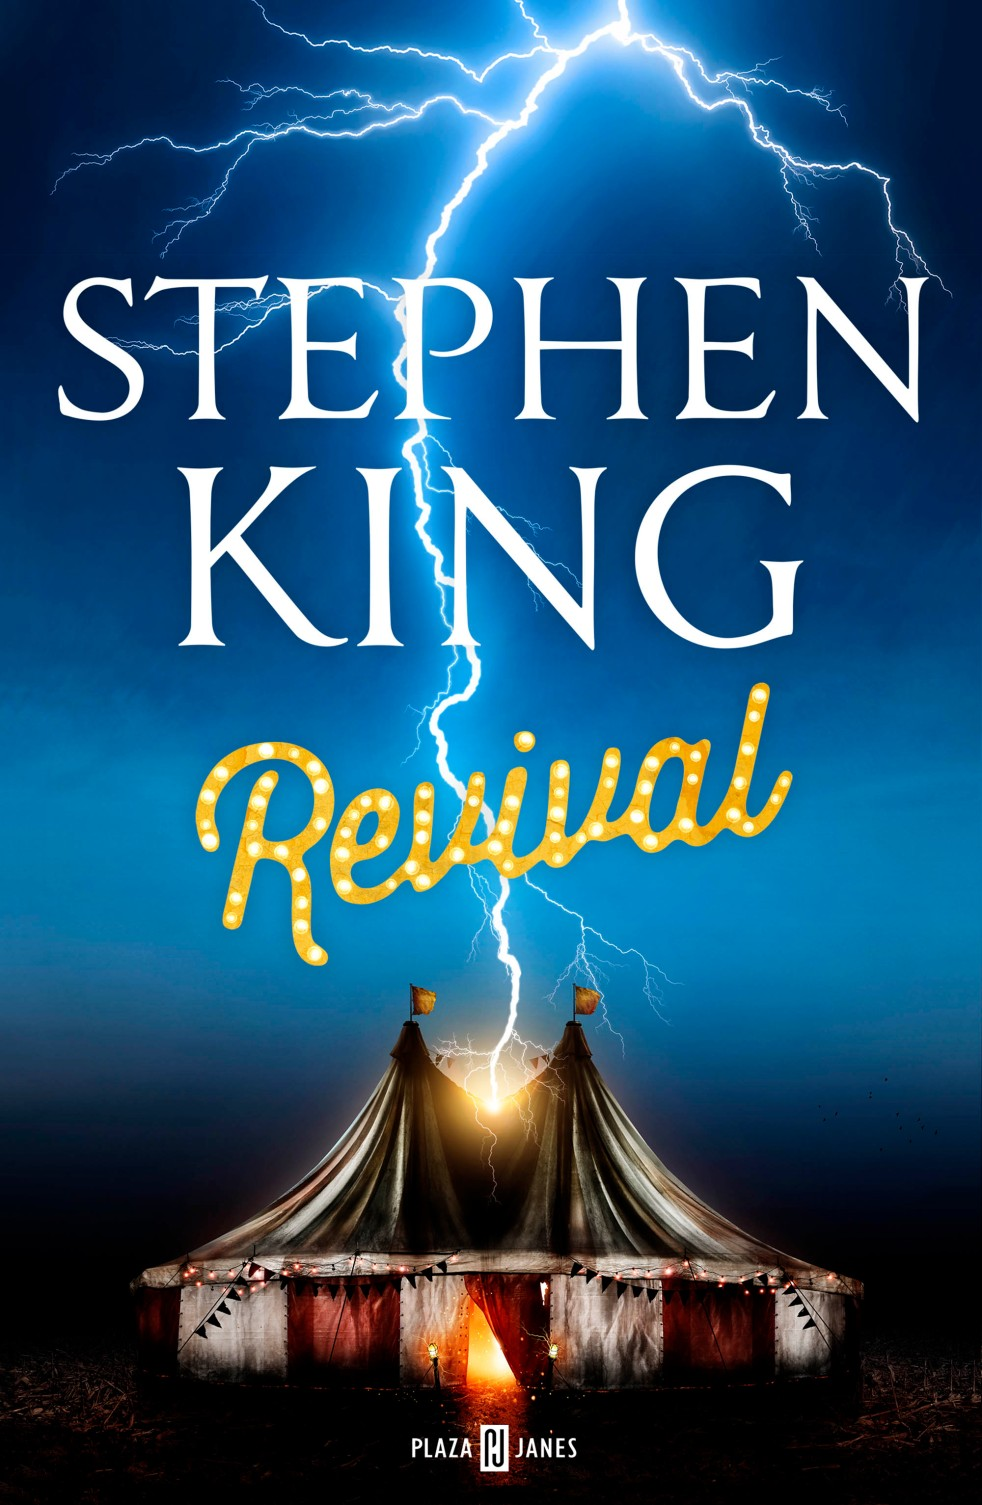 revival-stephen-king-paginas-de-nieve